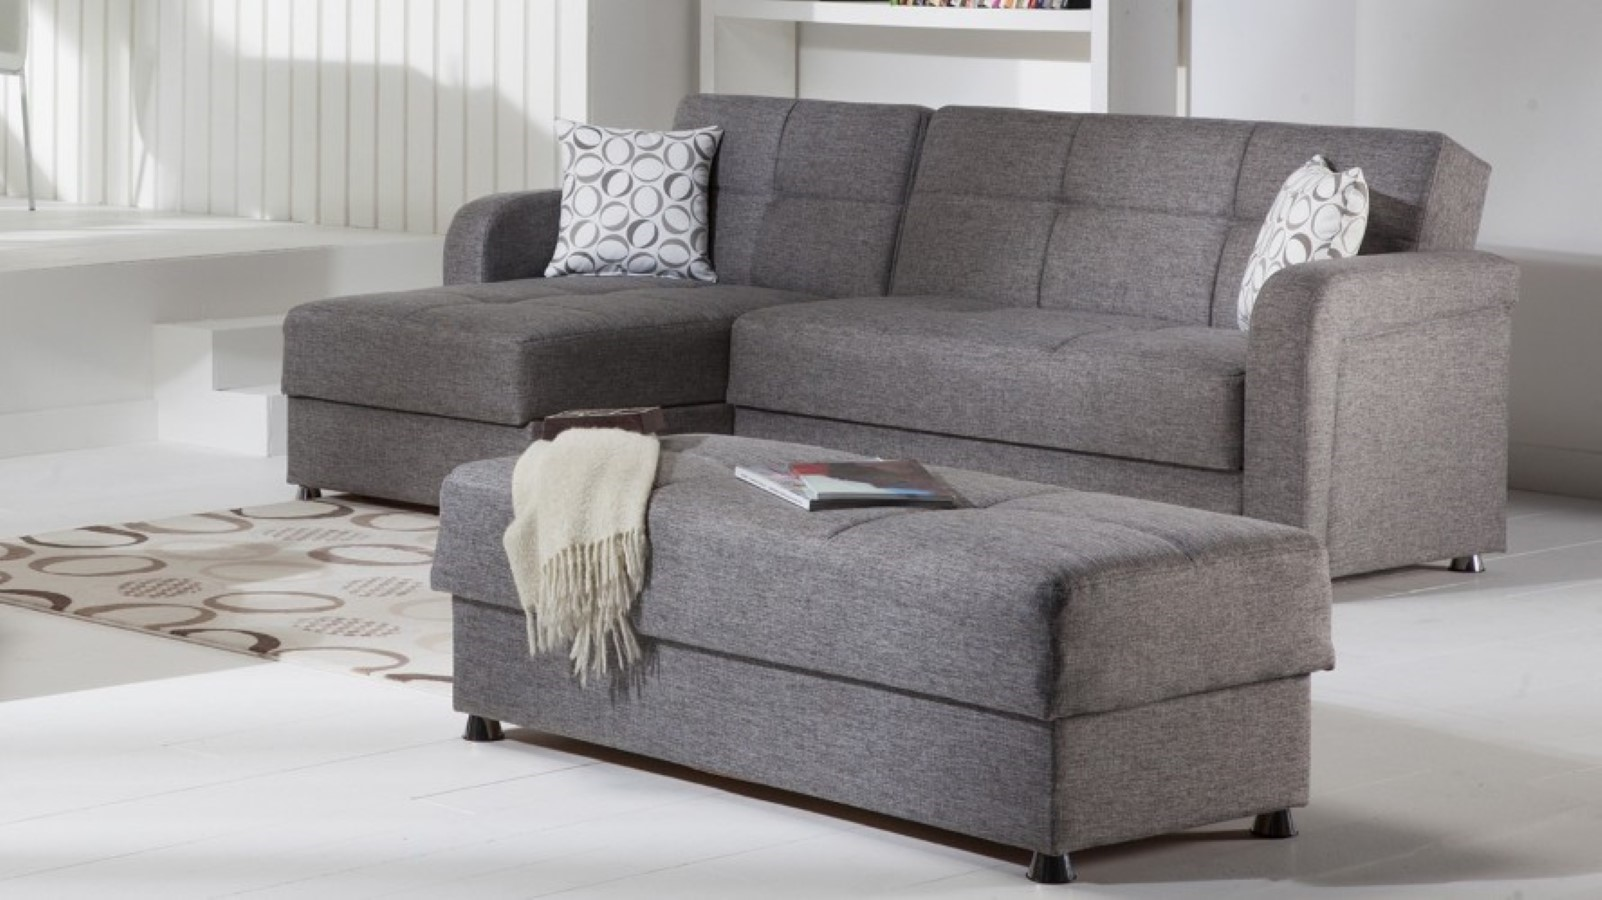 Gray And White Sofa Sofa And Ottoman Beautiful Sofa And Ottoman 65 In Living